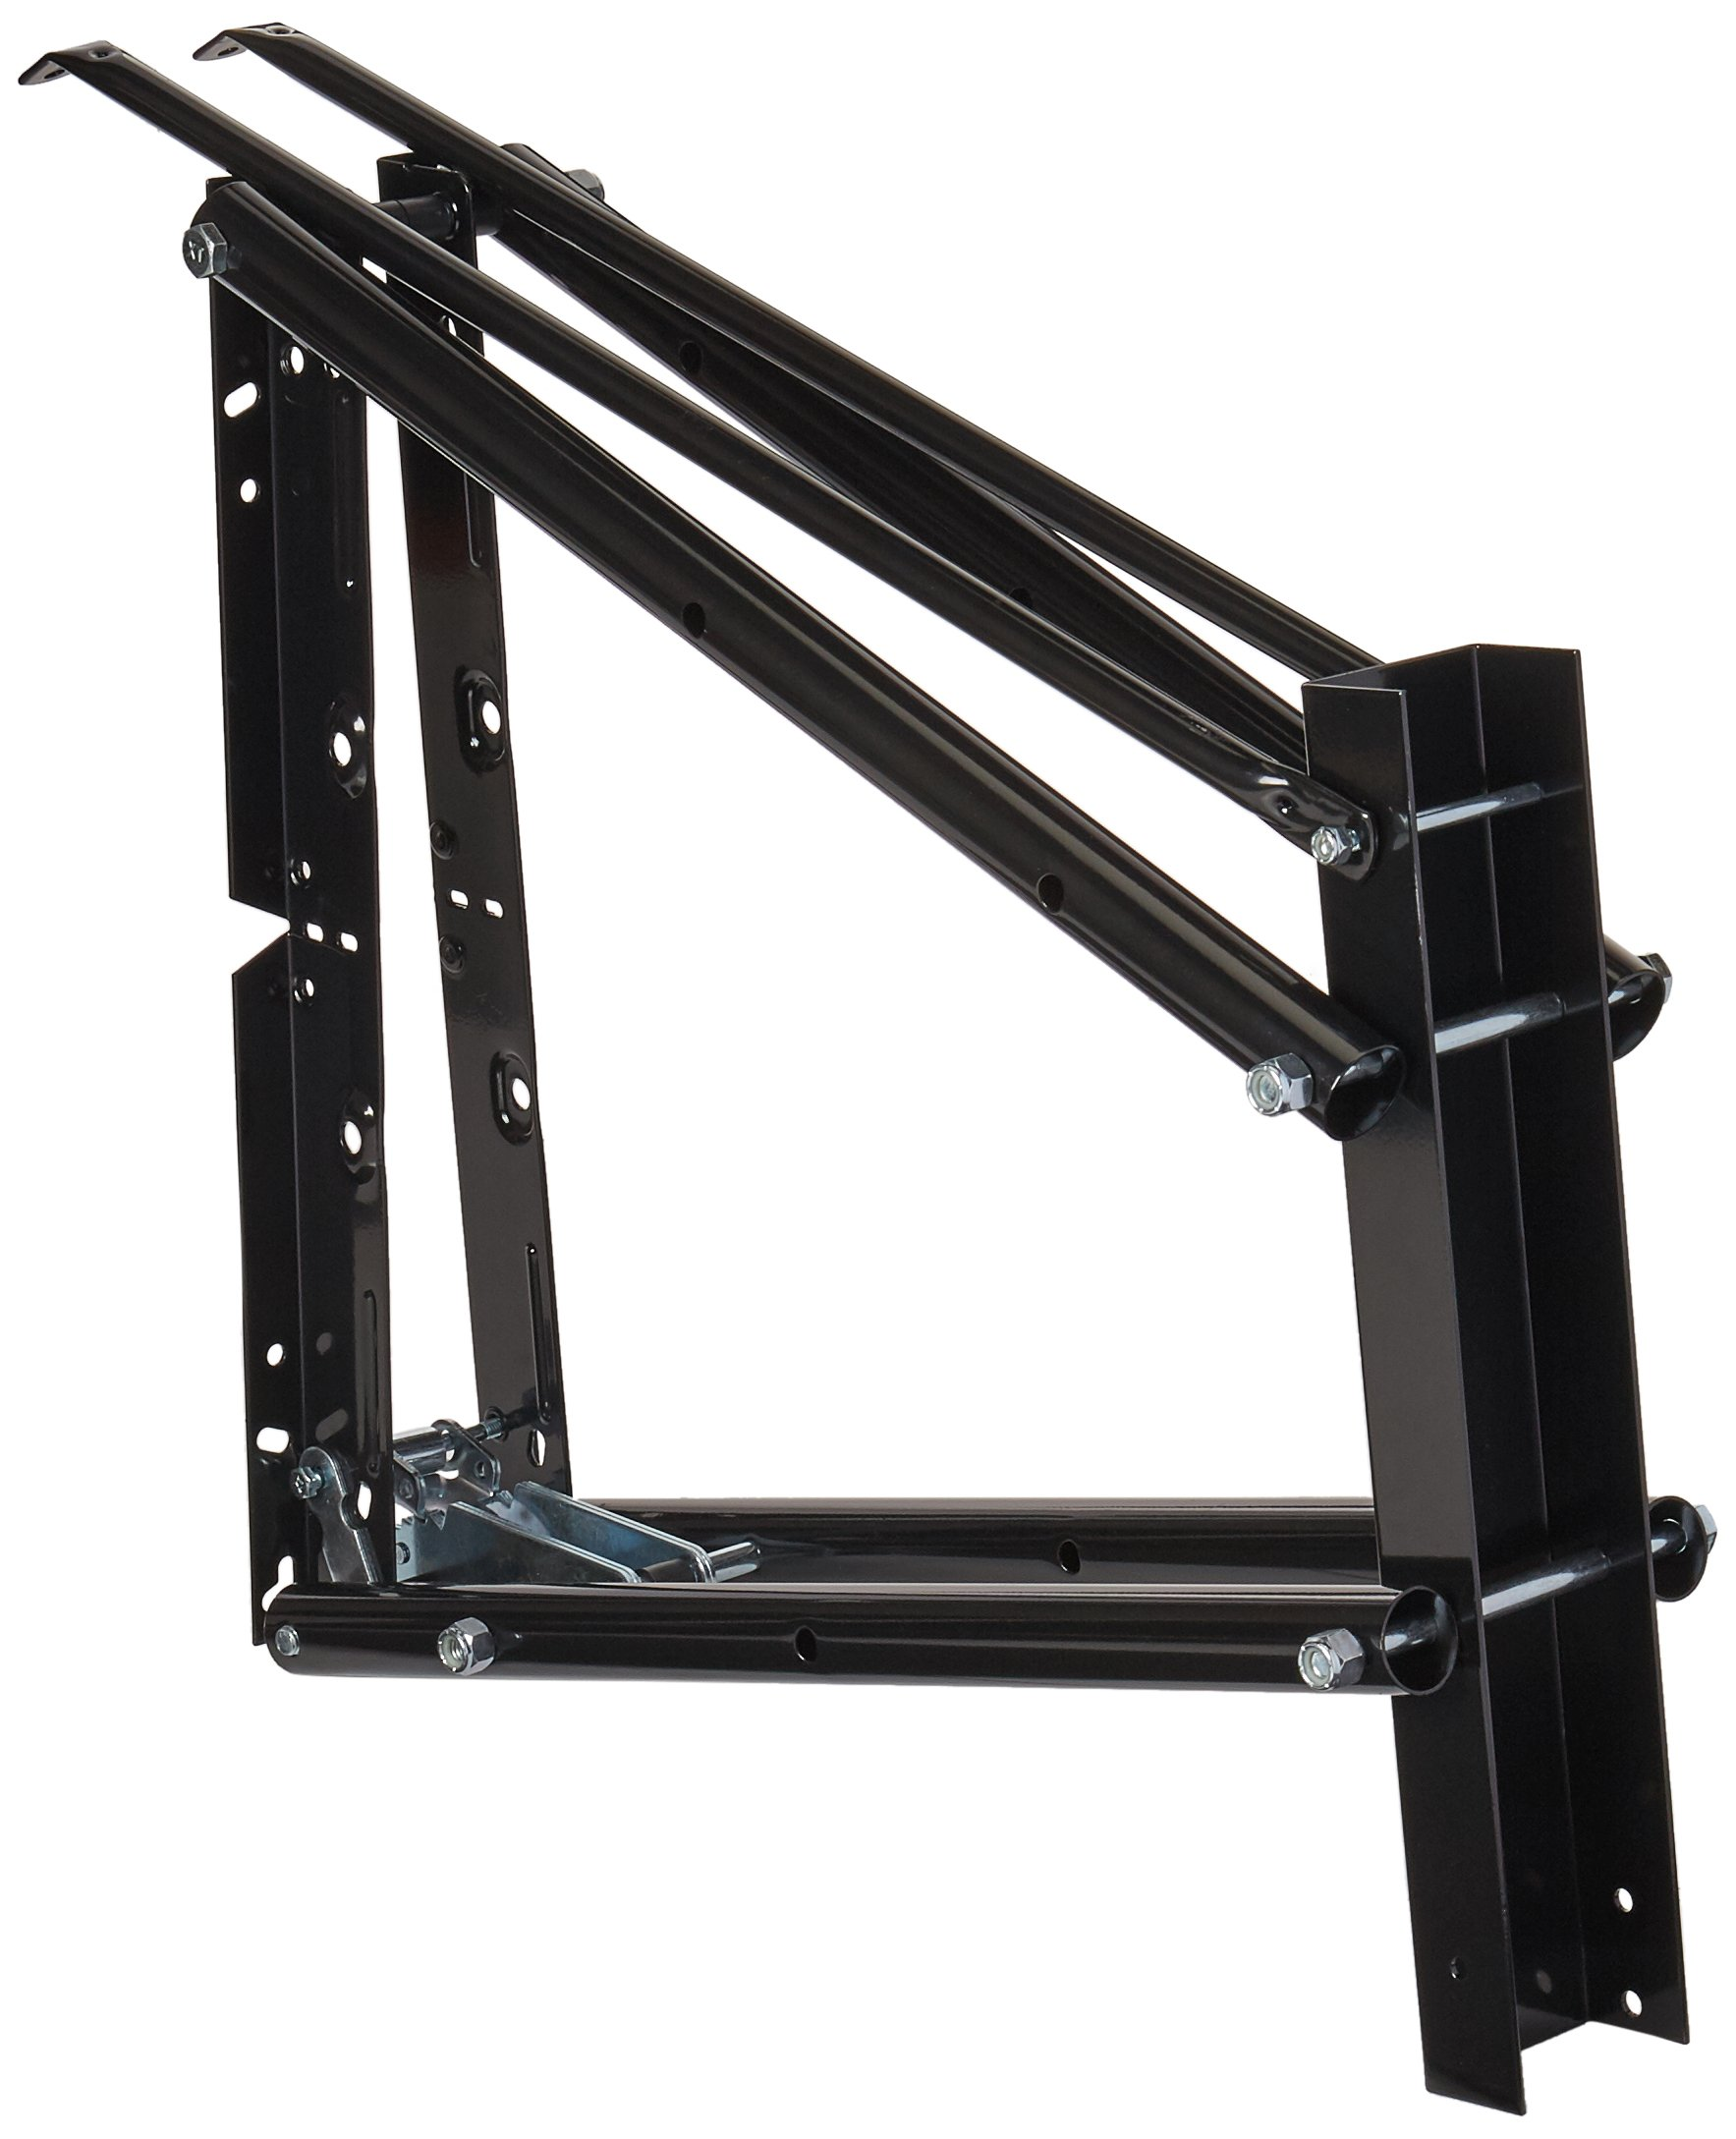 Huffy Conversion Kit for Basketball Hoops